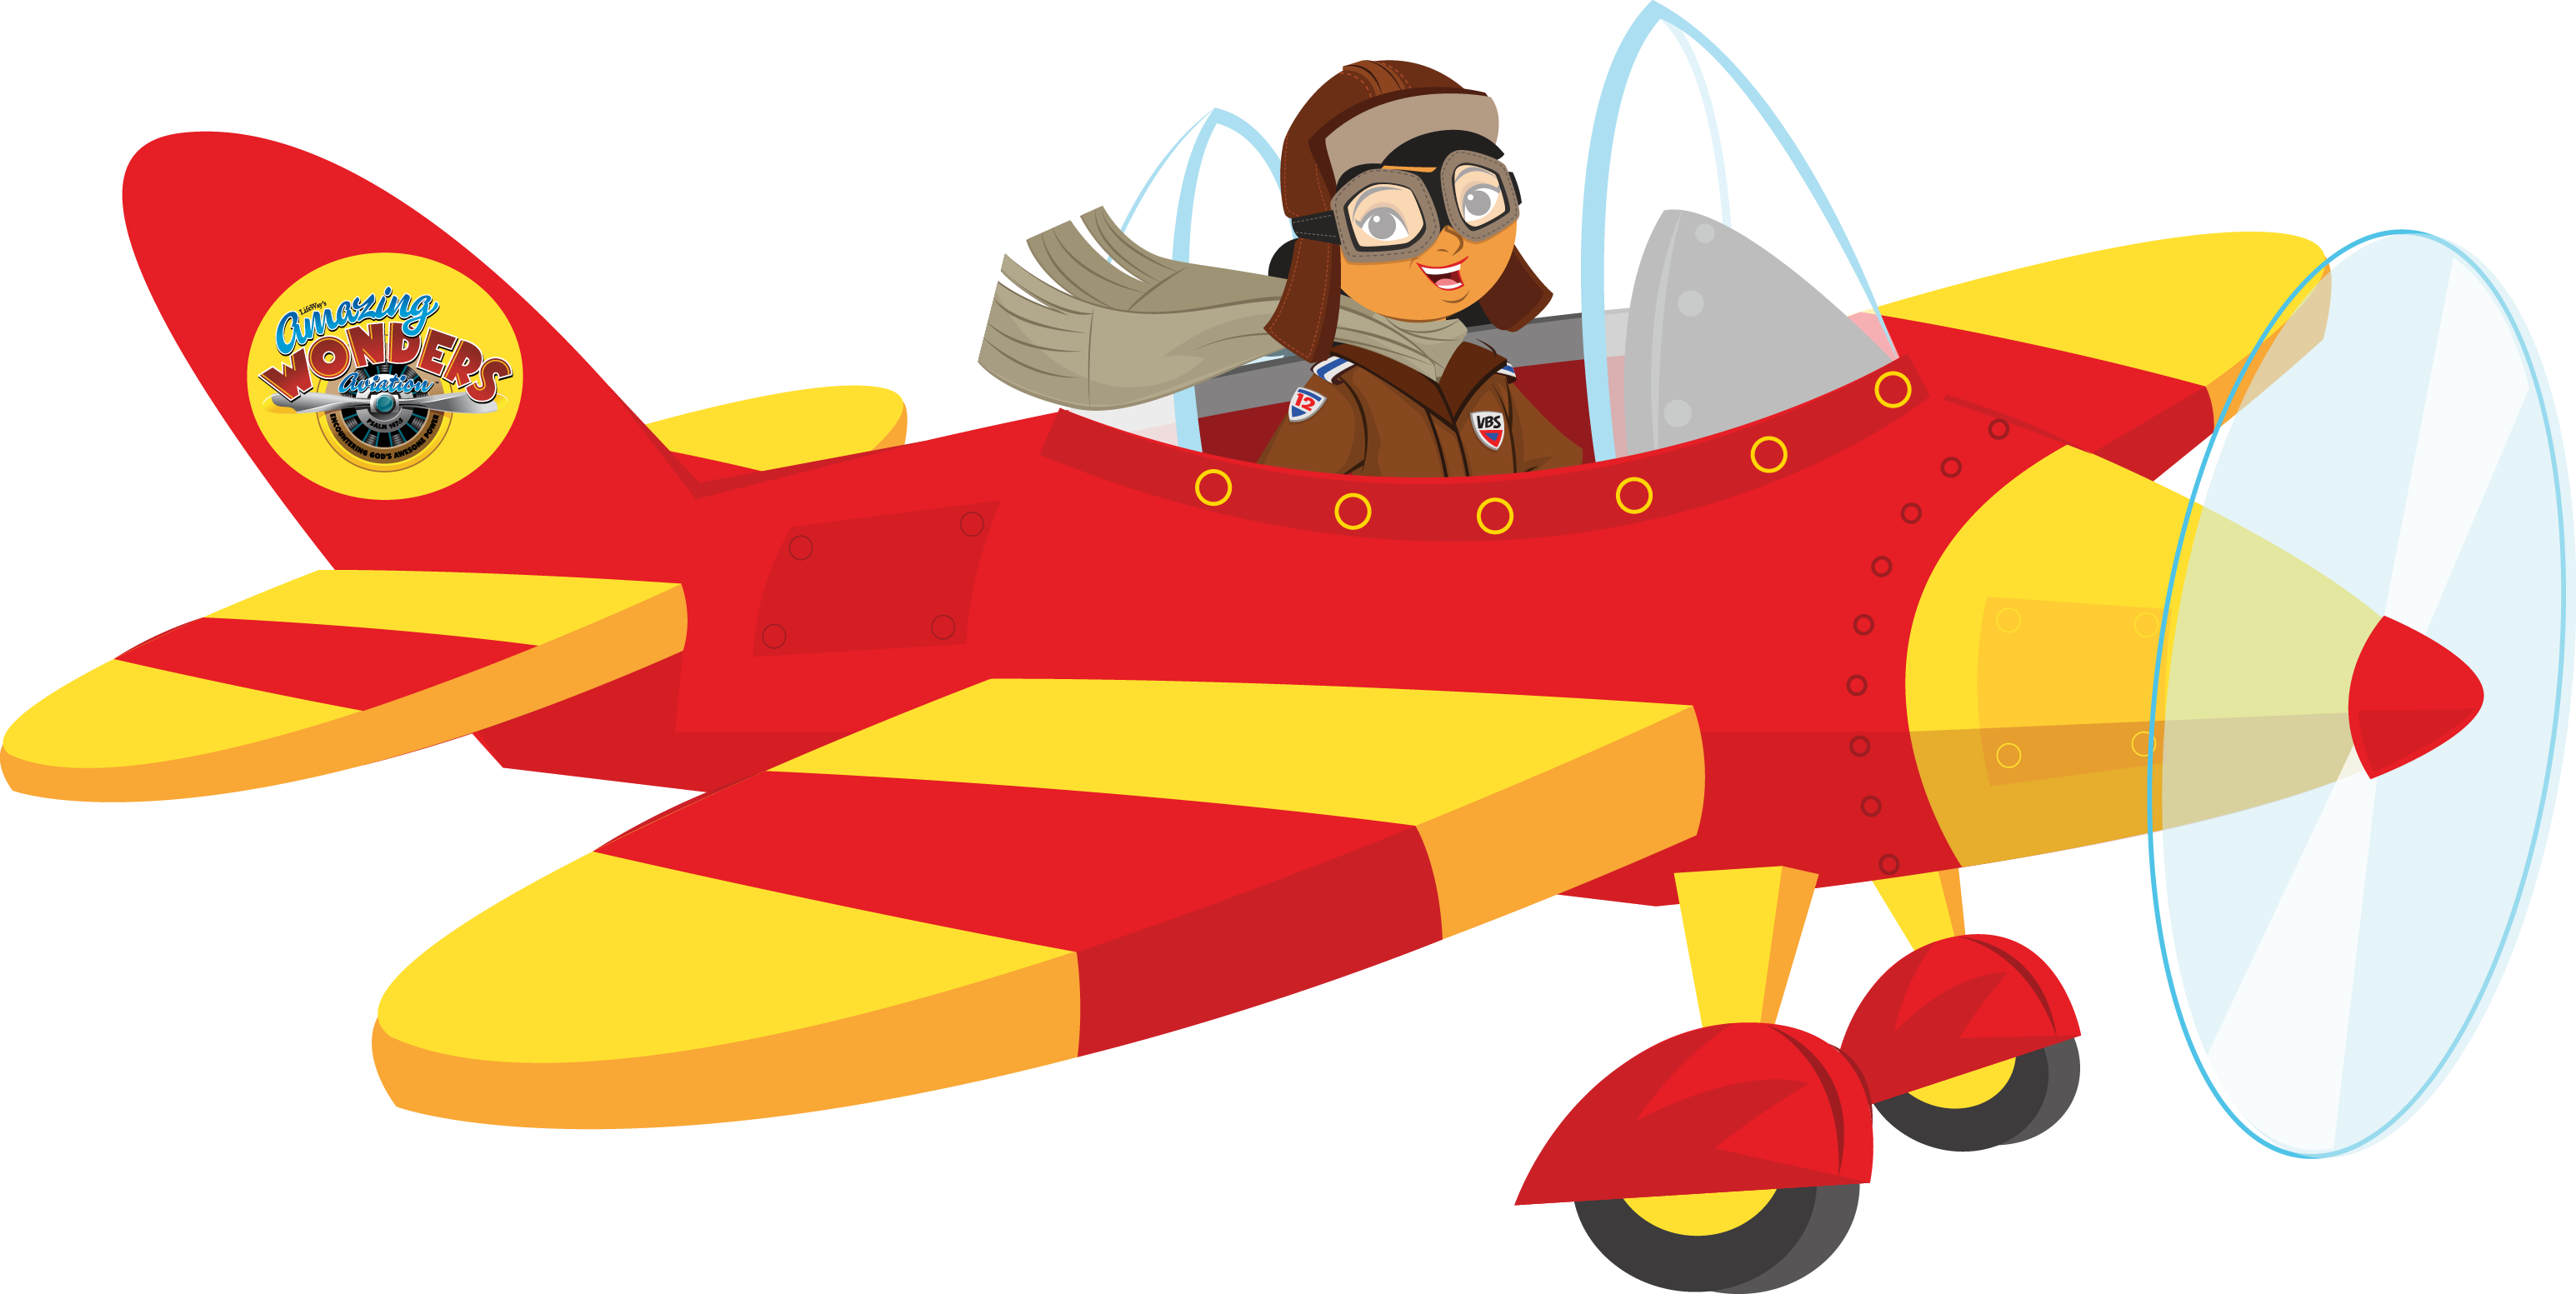 Pilot clipart old airplane Airplane images clip  for